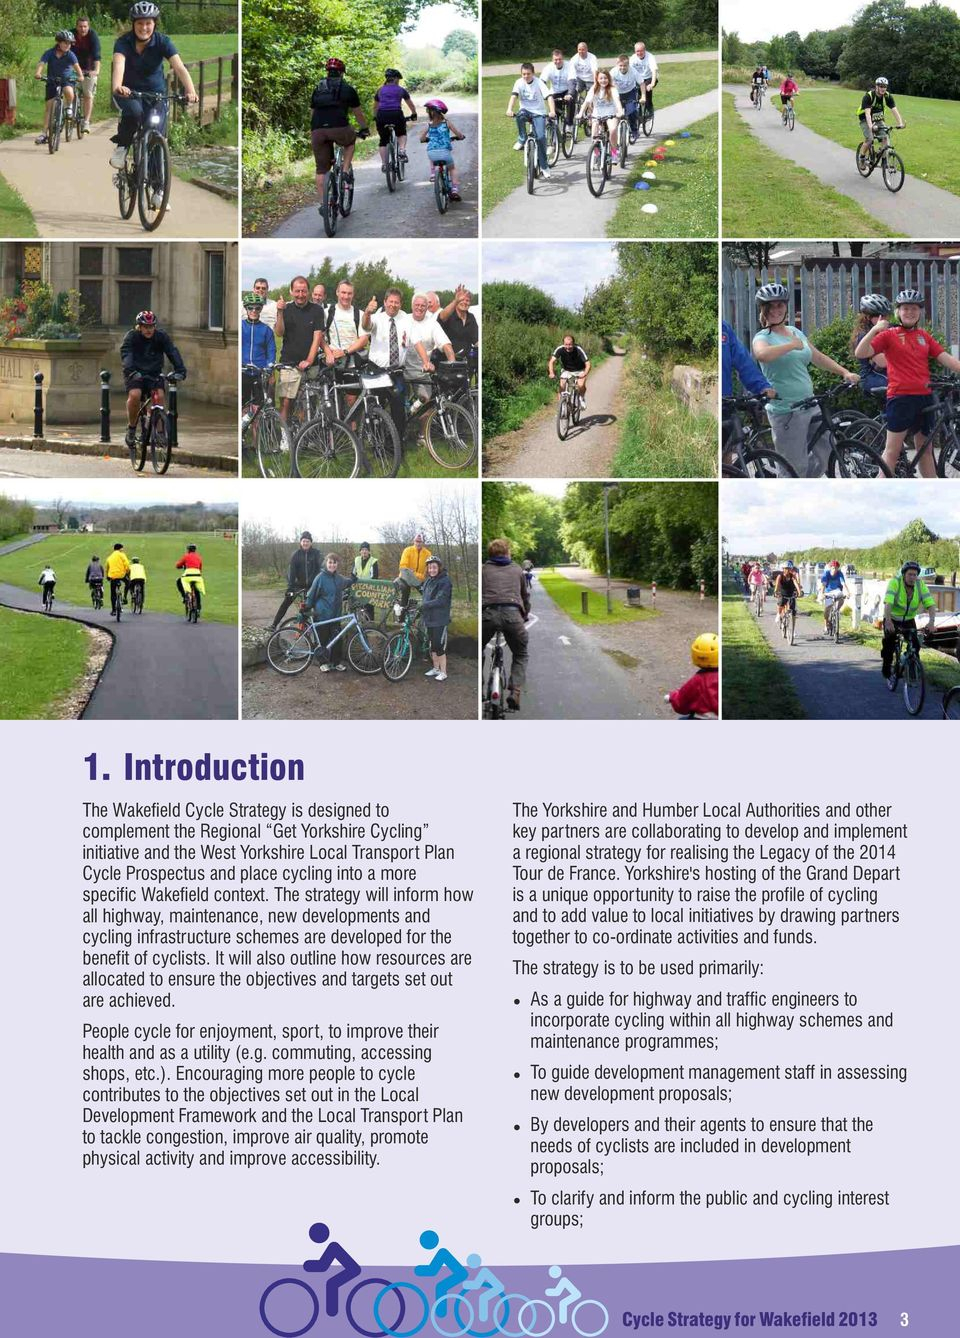 It will also outline how resources are allocated to ensure the objectives and targets set out are achieved. People cycle for enjoyment, sport, to improve their health and as a utility (e.g. commuting, accessing shops, etc.